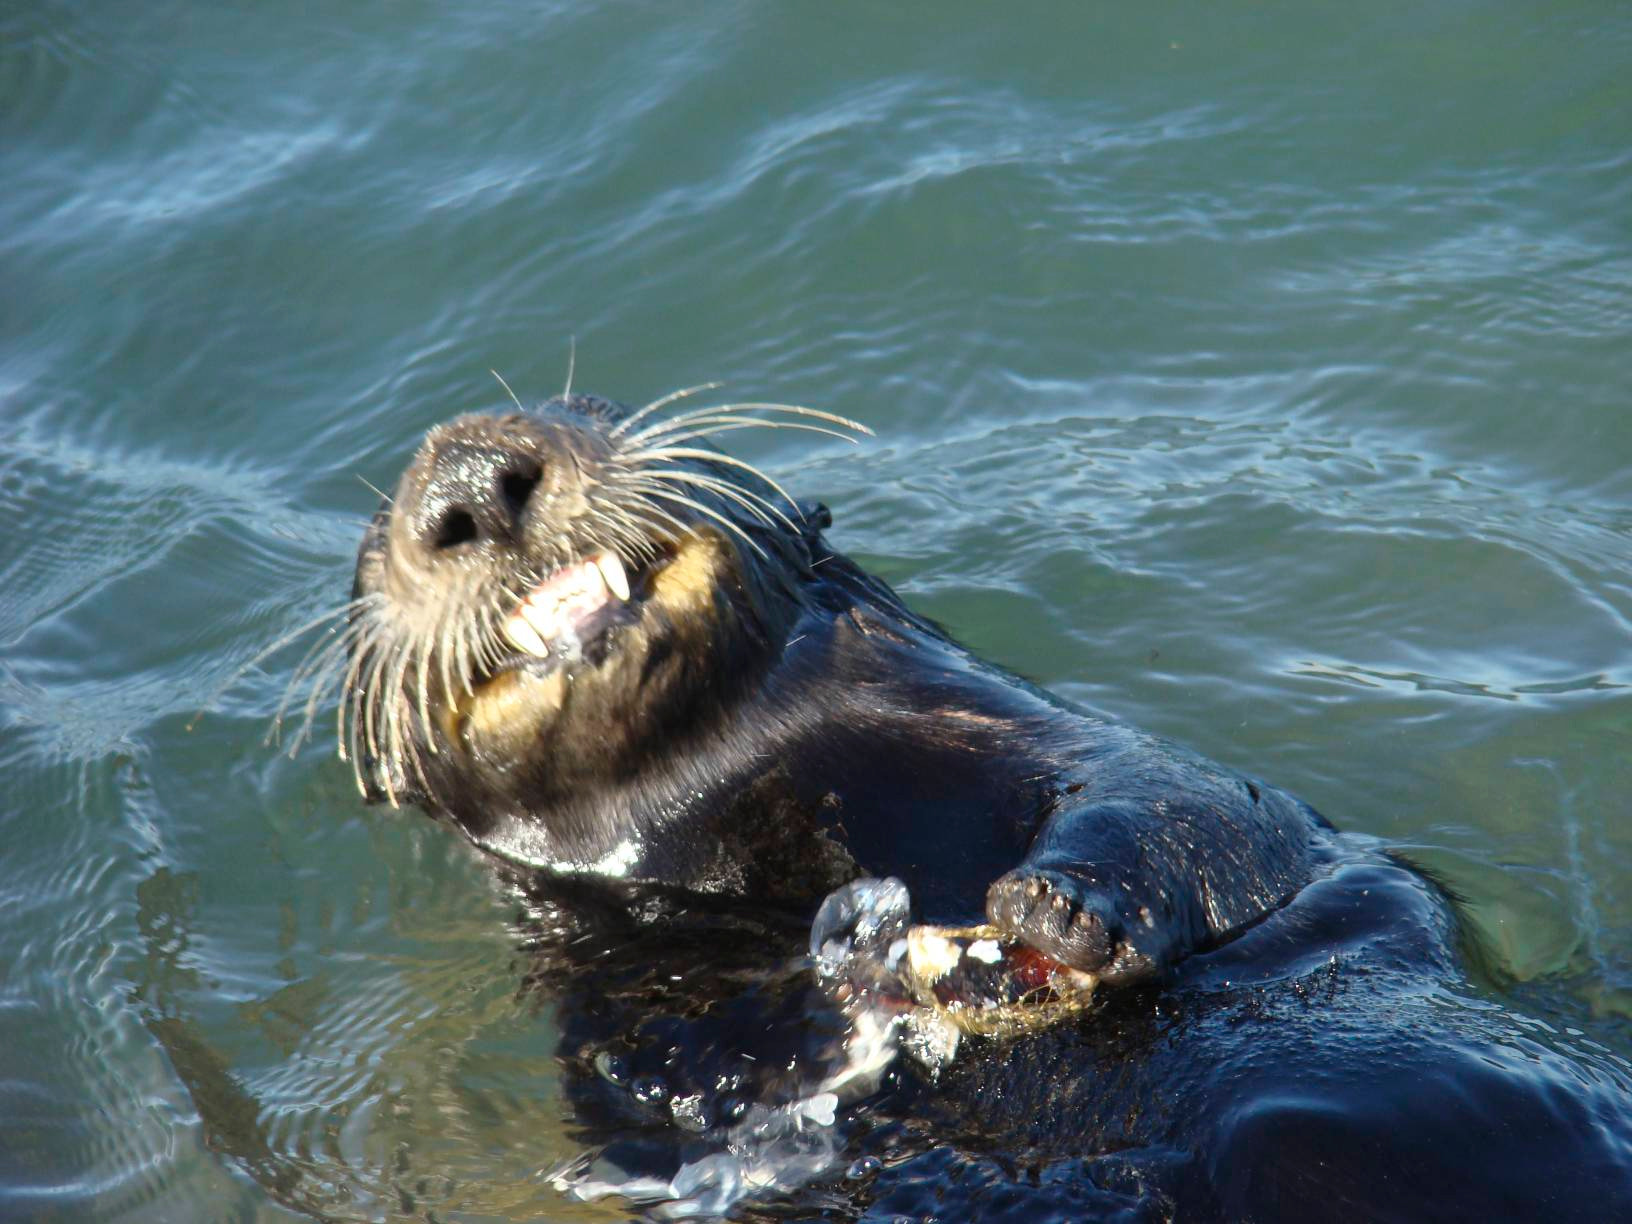 Photograph Sea Otter by Rick Skillin on 500px